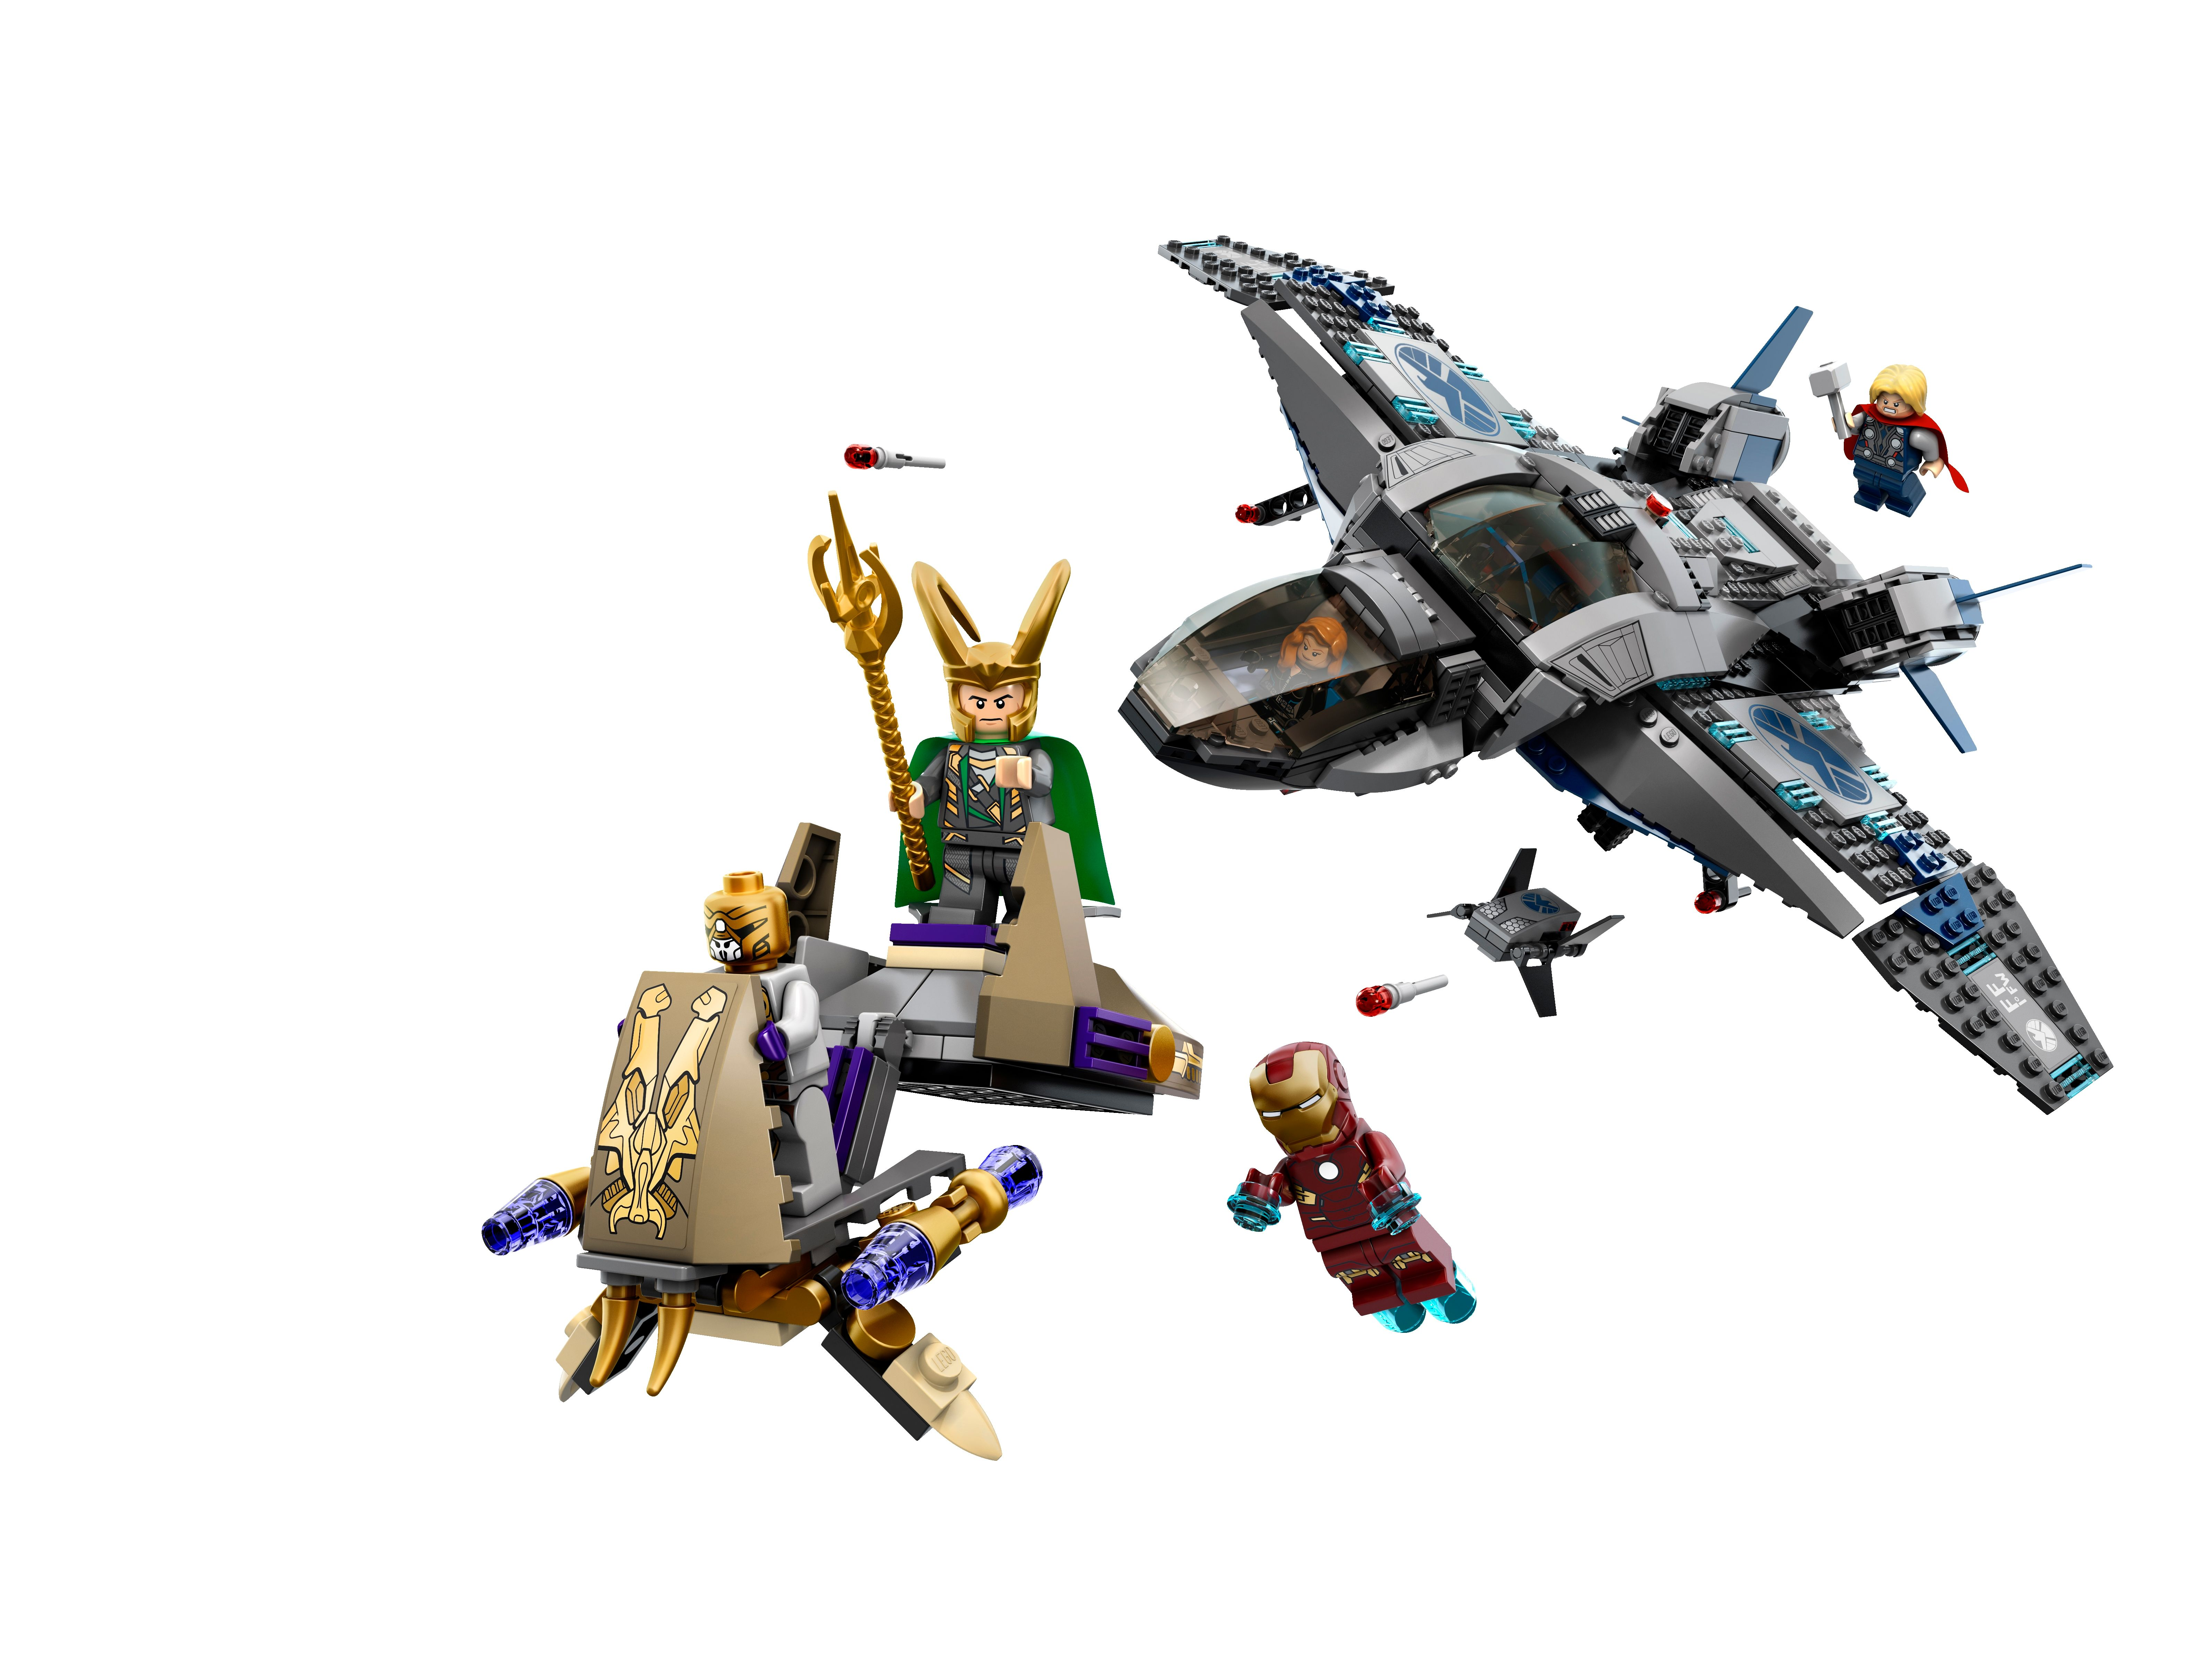 Product Description. LEGO Quinjet Aerial Battle From the Manufacturer. Defeat Loki and his forces with the super fast Quinjet!Reviews: